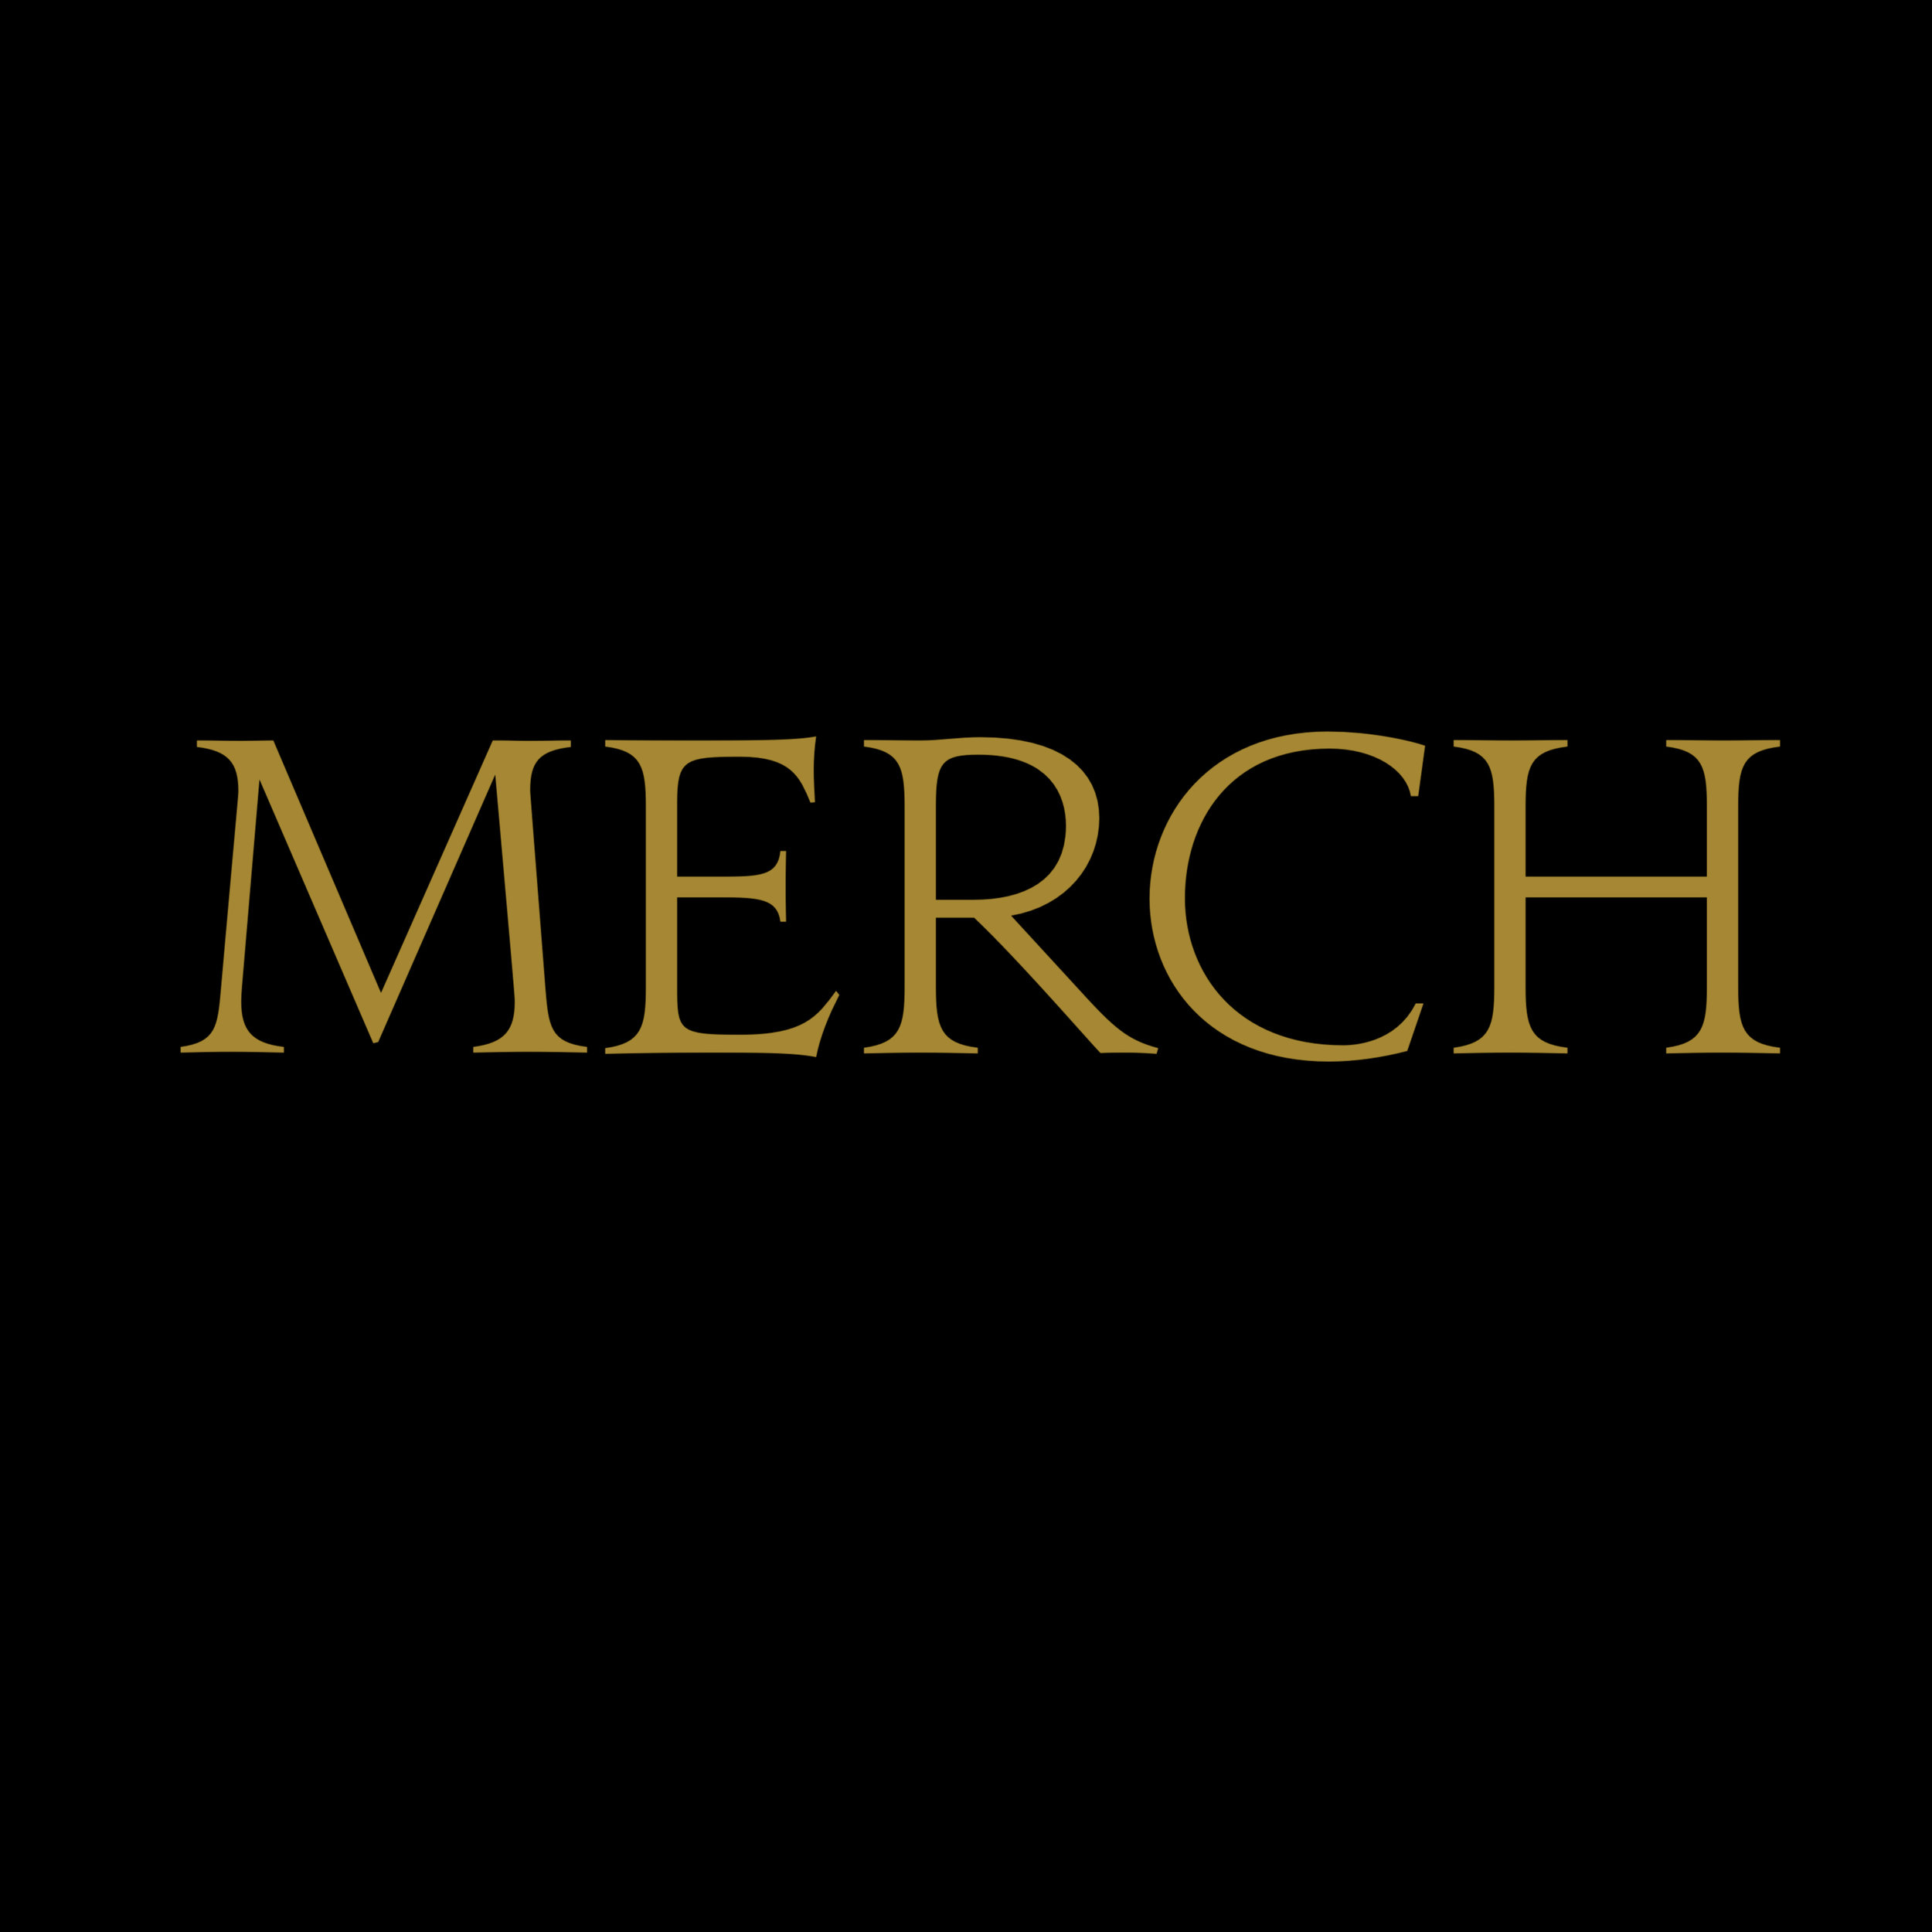 THIS IS merch font black FONT.jpg